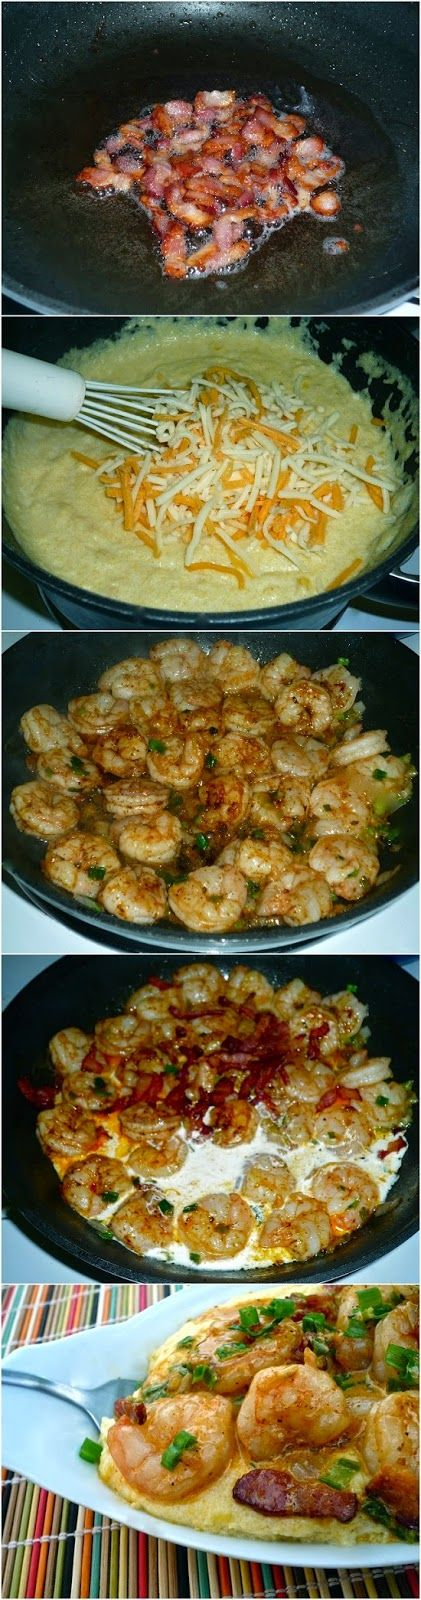 Cheesy Shrimp and Grits. Nom. I mean wow. So good. Did not add heavy cream at end. Didn't need it. Make sure to really pour in the cornmeal slowly otherwise you get some lumps.